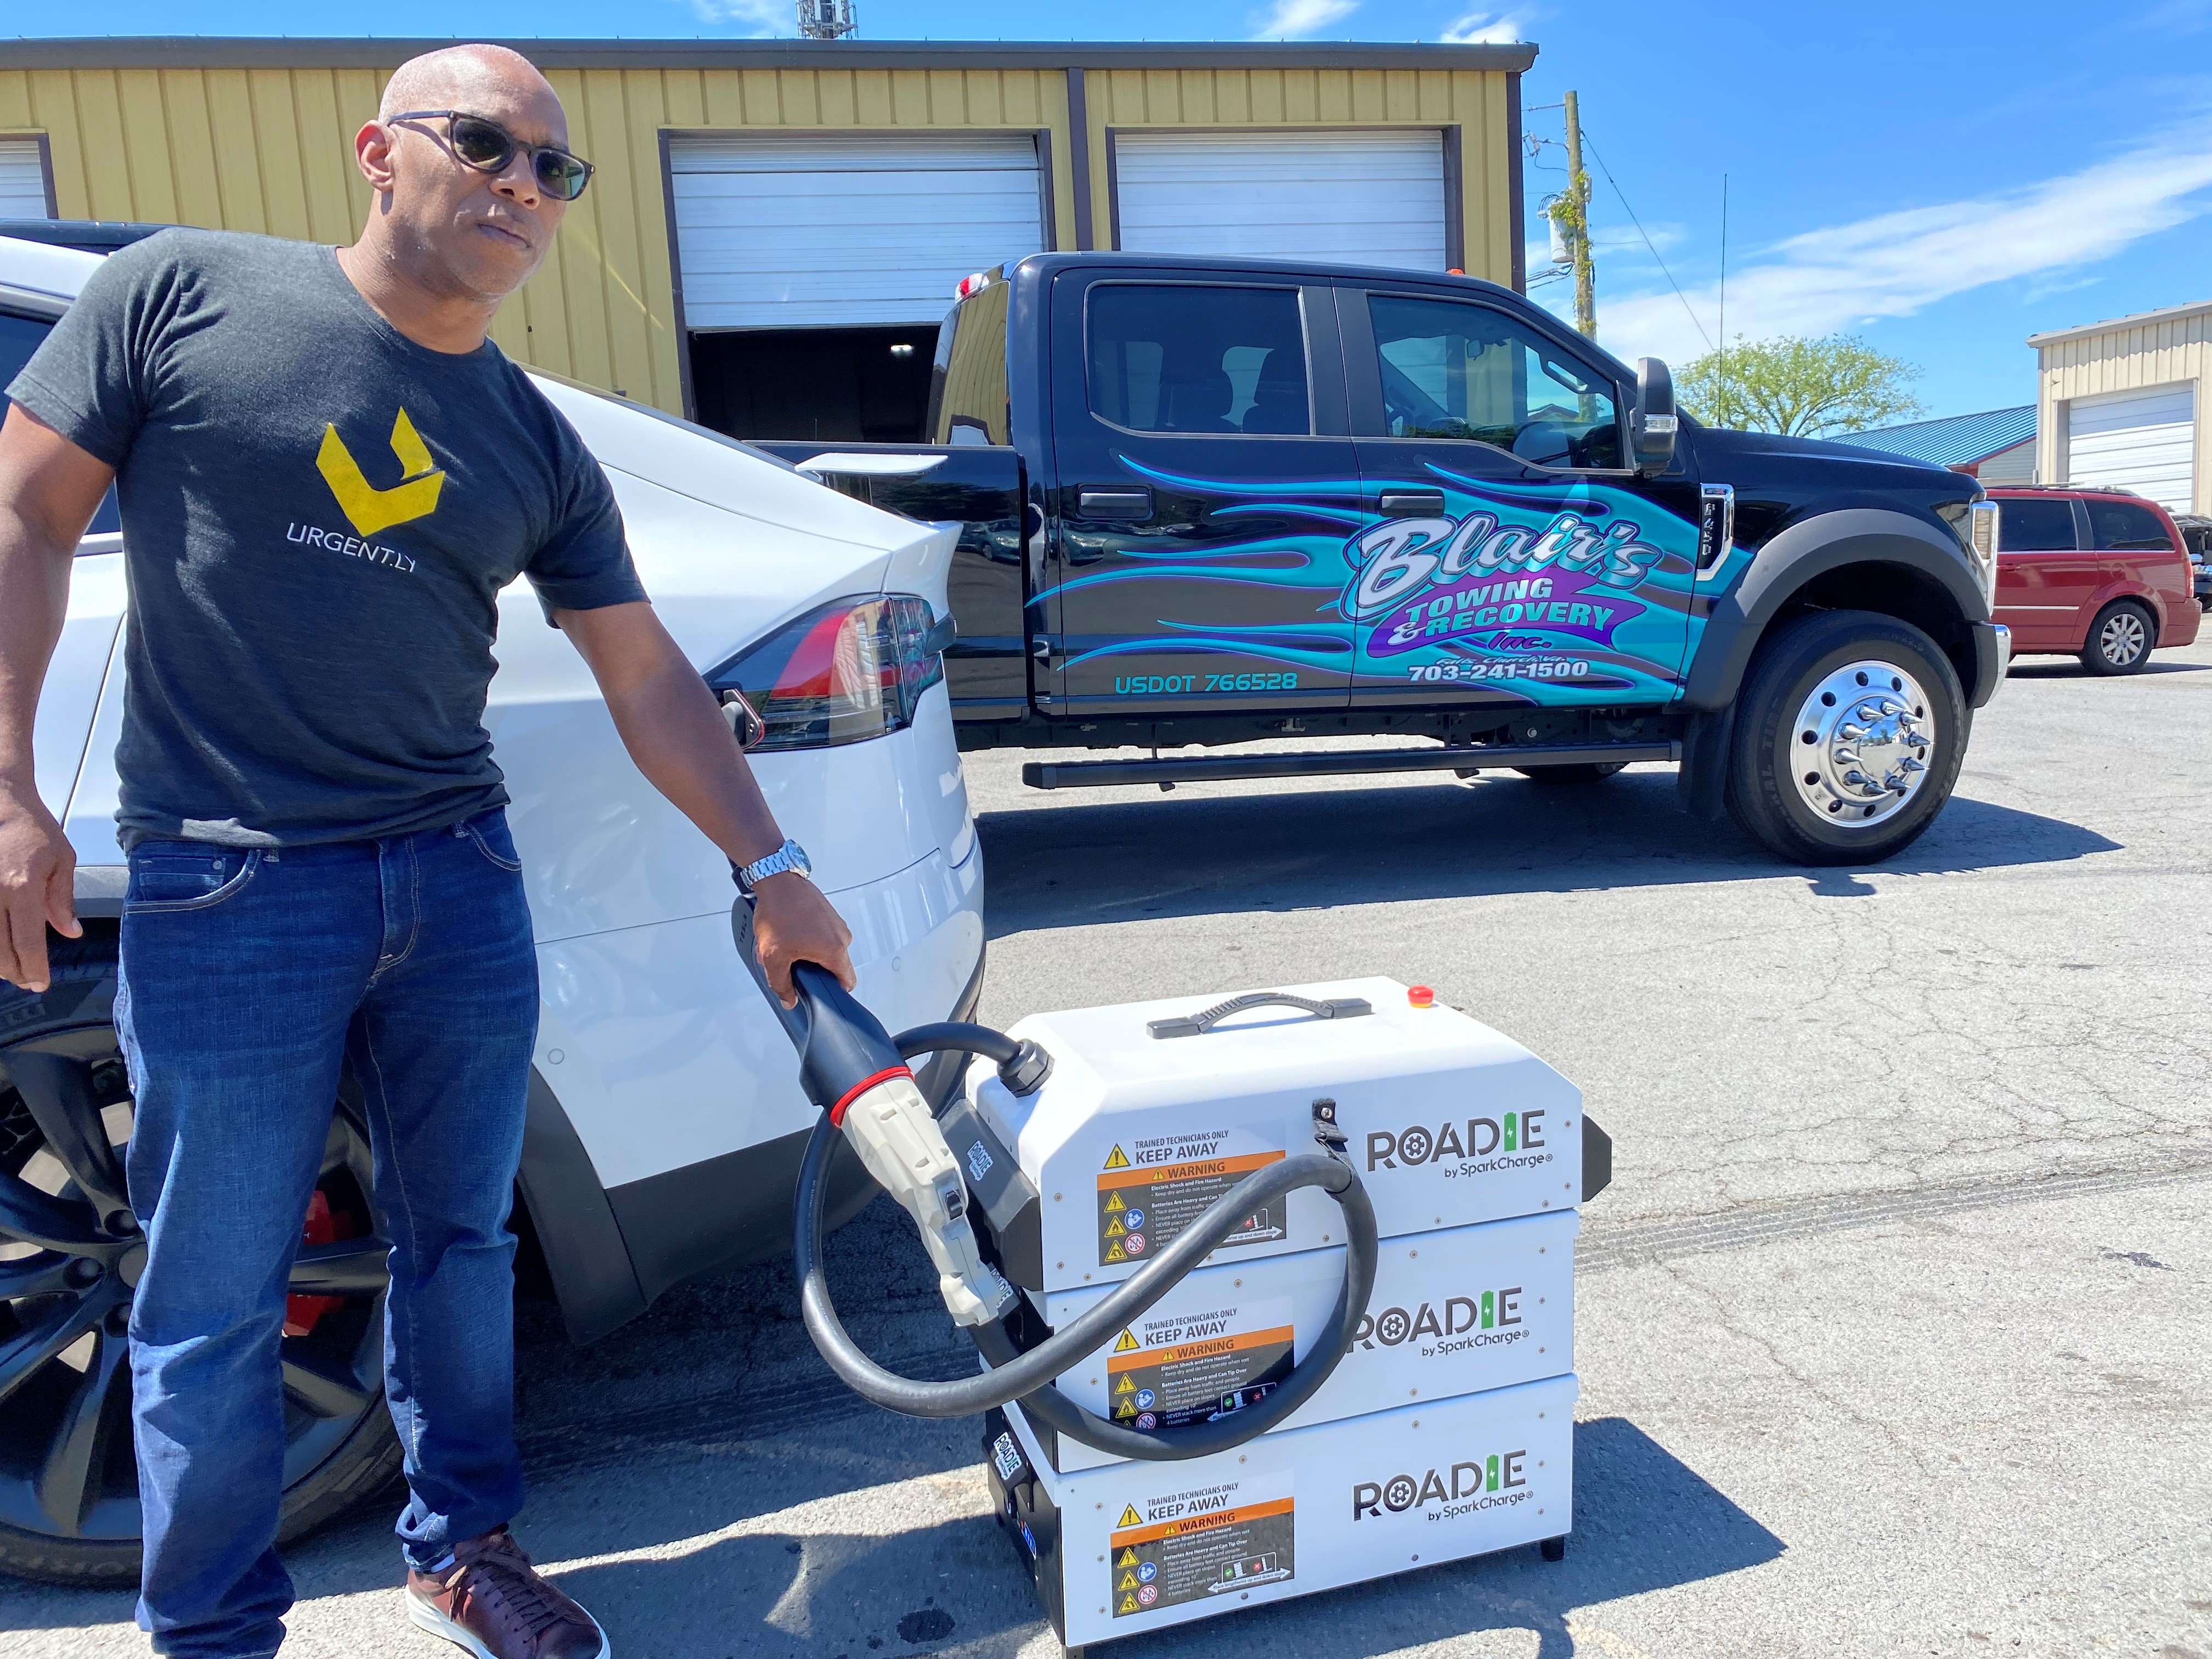 Urgently Partners with SparkCharge to Bring On-Demand EV Charging to Smart Mobility Assistance